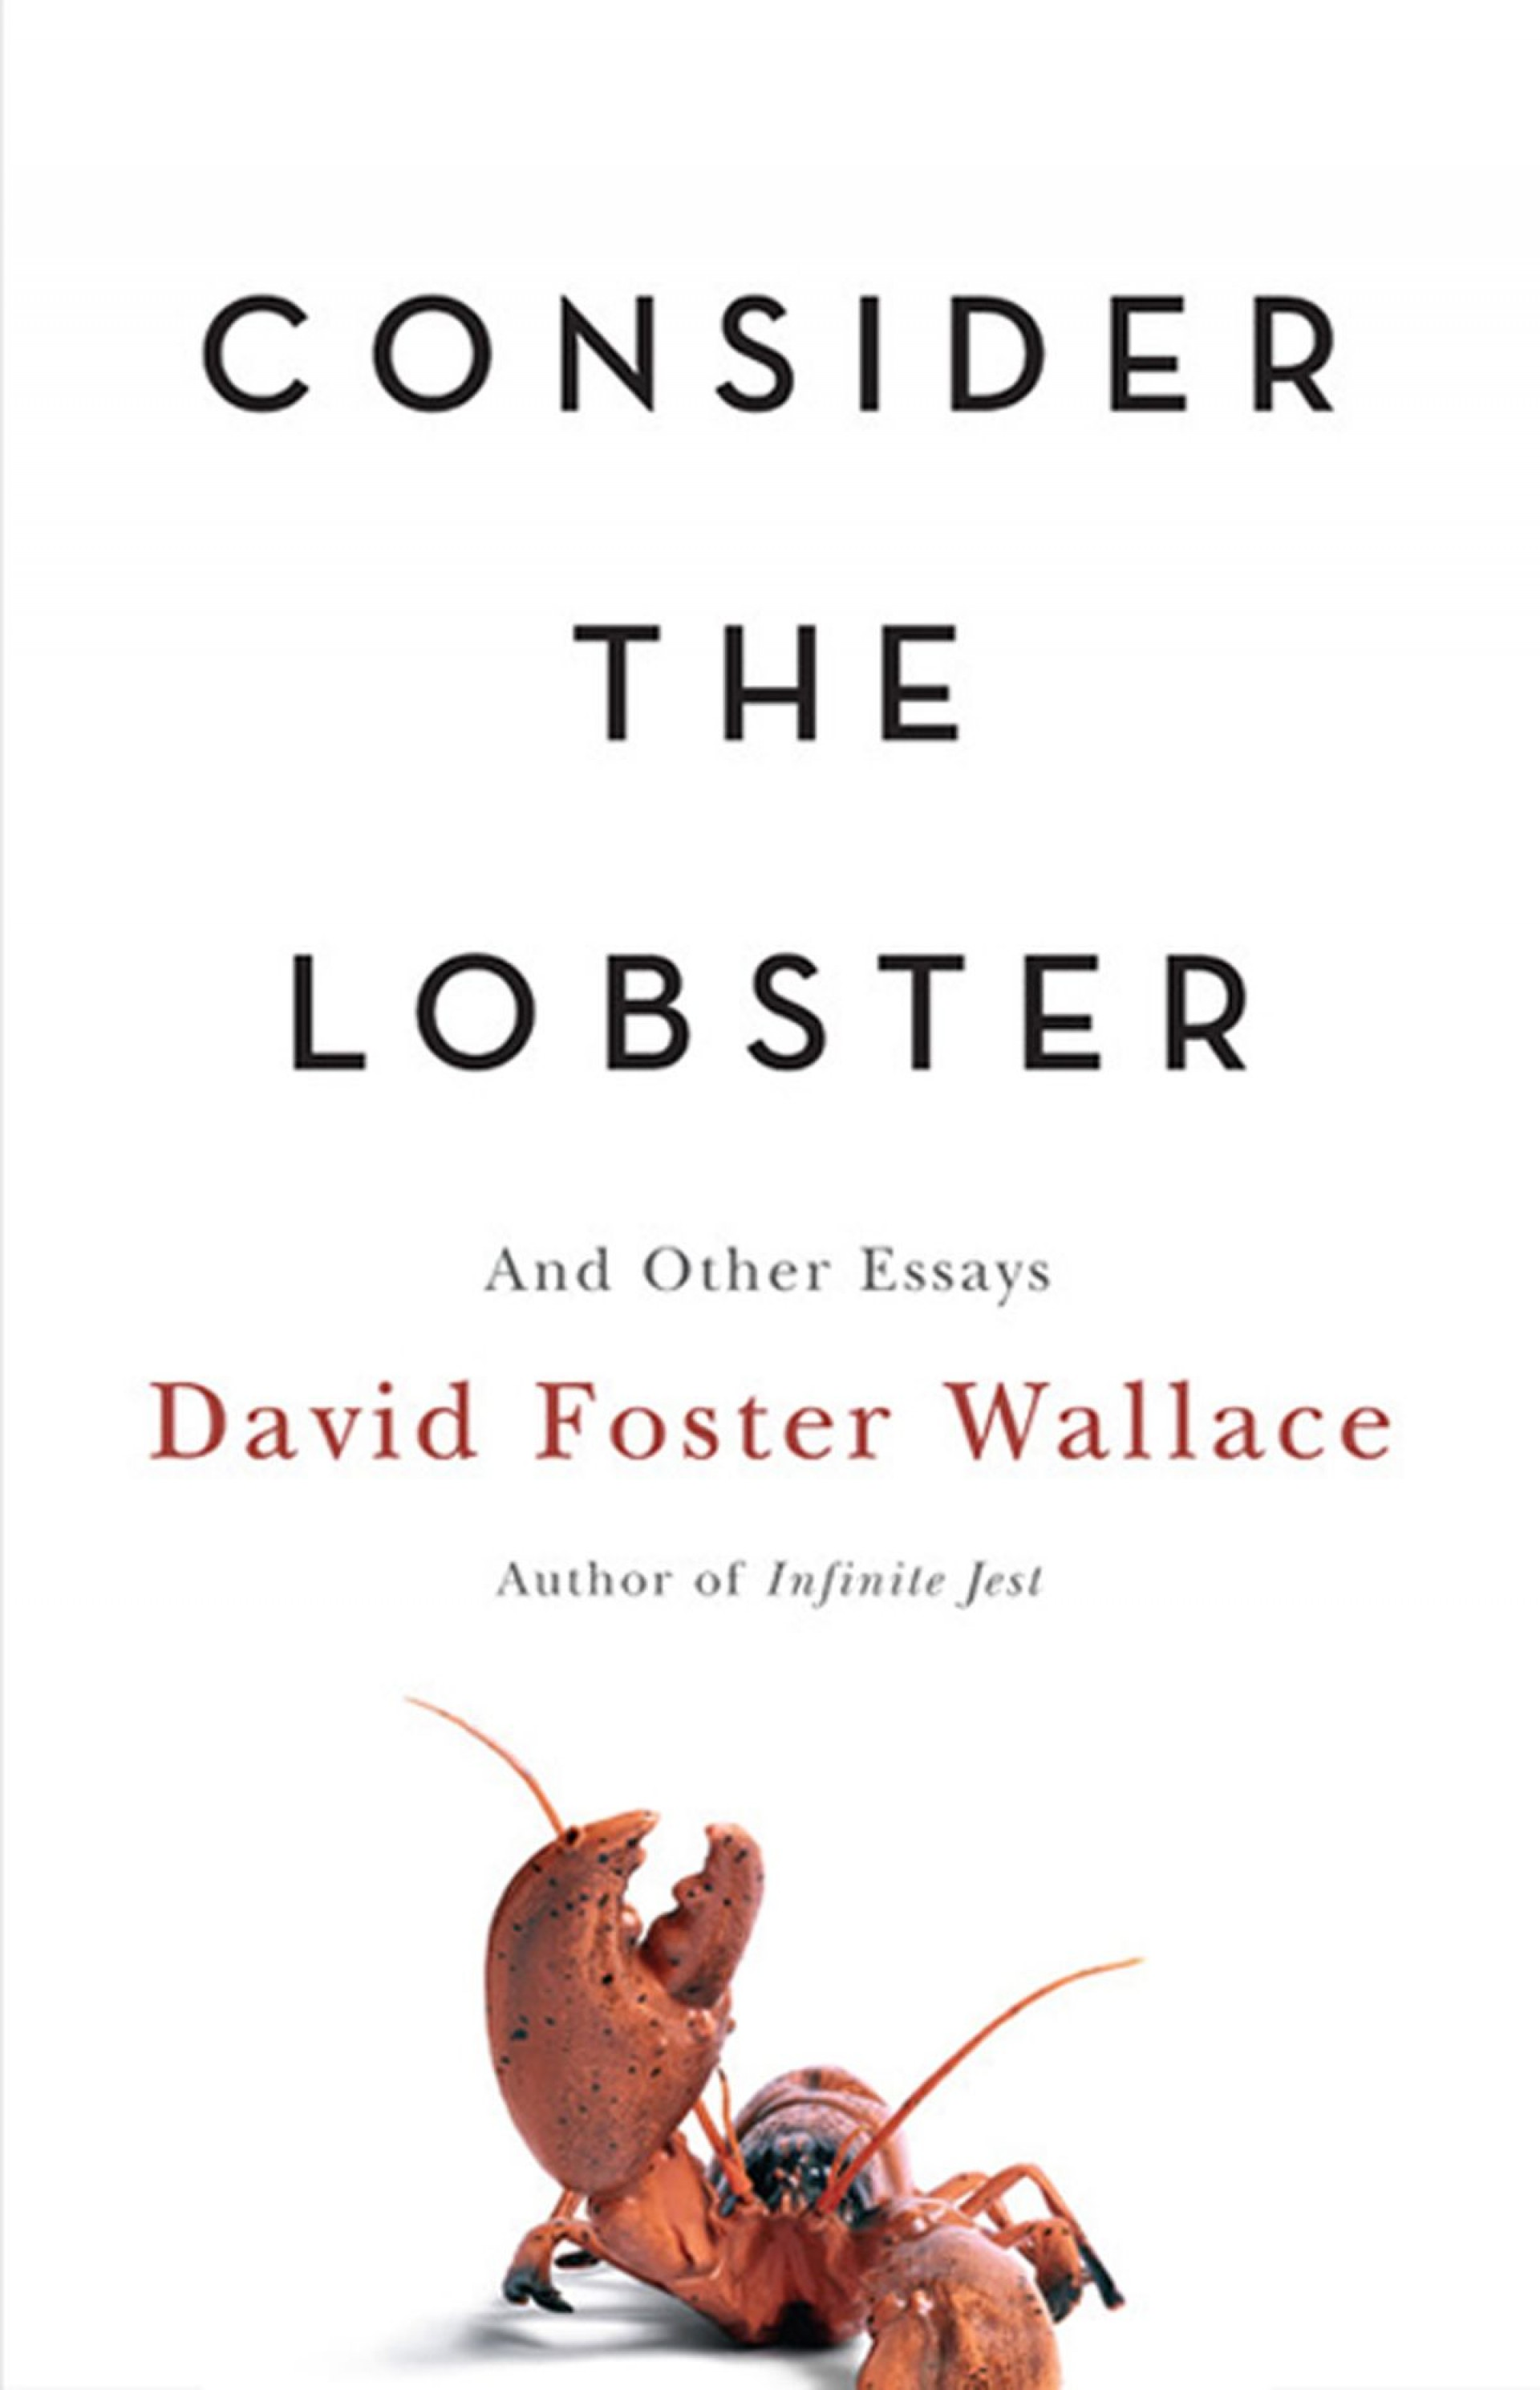 002 Consider The Lobster Essay Exceptional Rhetorical Analysis And Other Essays Summary 1920